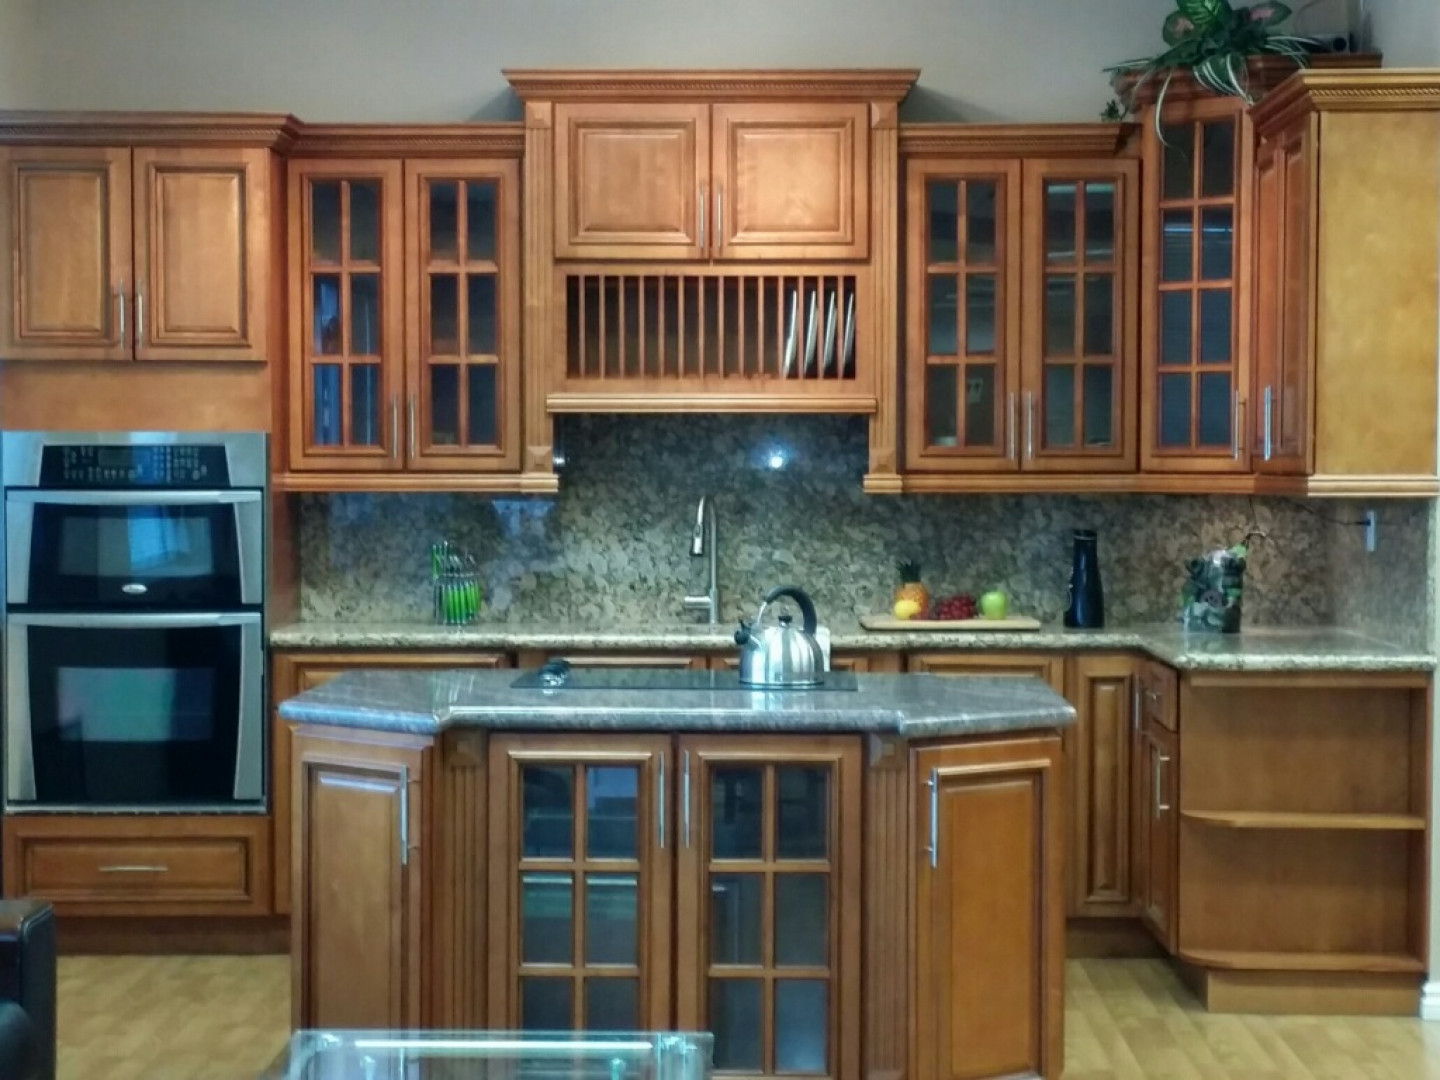 Are You Looking to Upgrade Your Kitchen Cabinets?